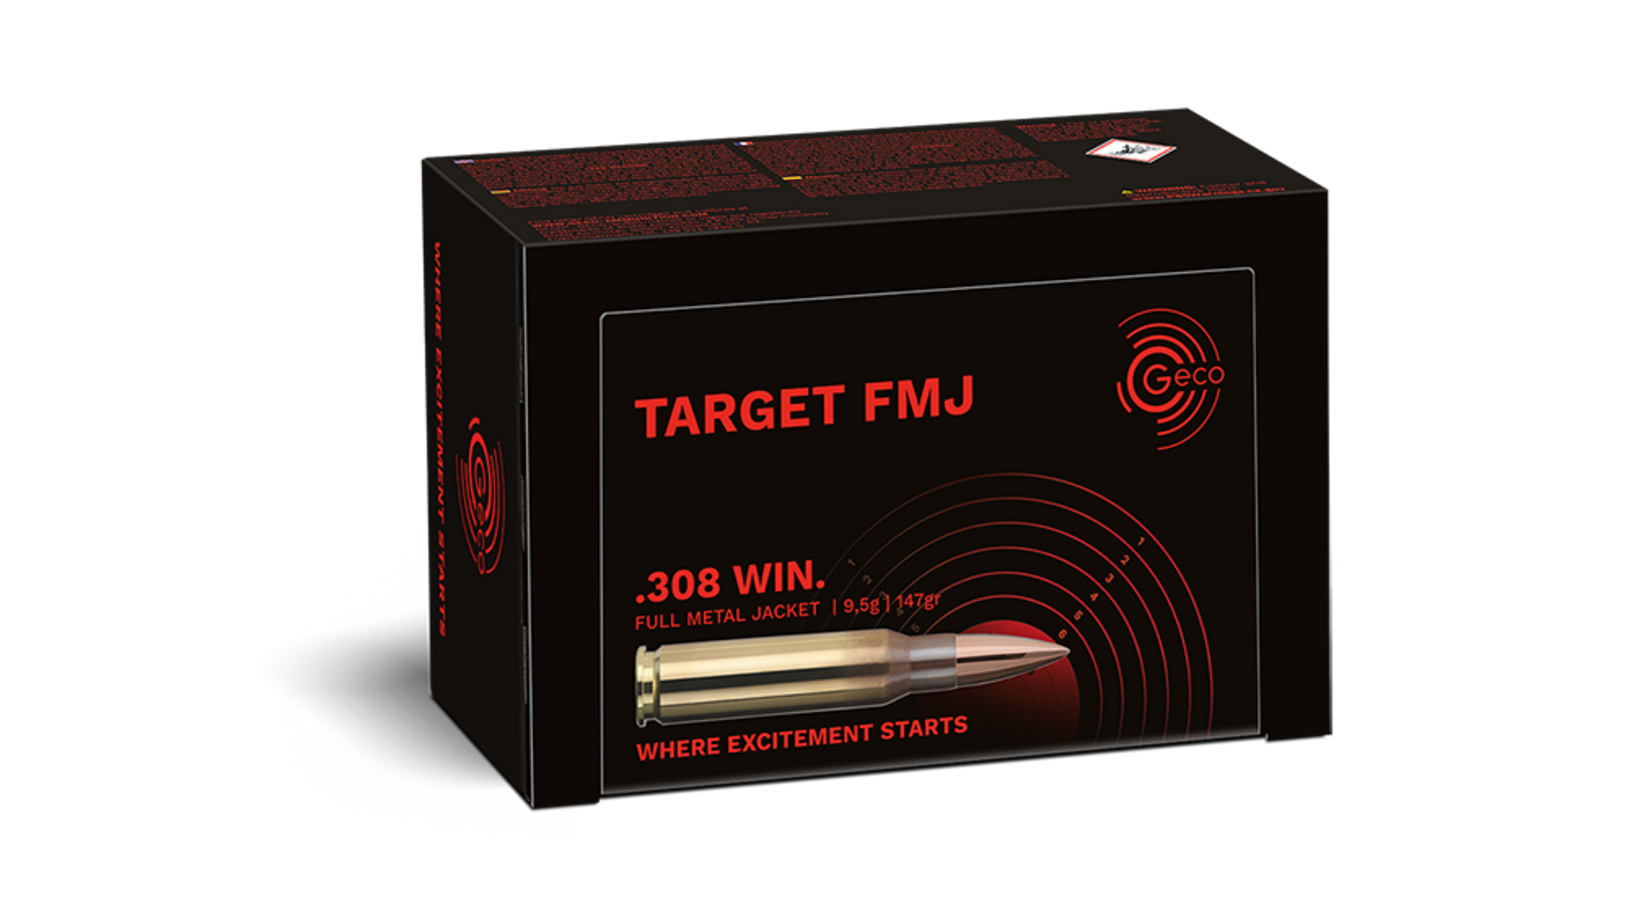 Image of the GECO TARGET FMJ ammunition packaging